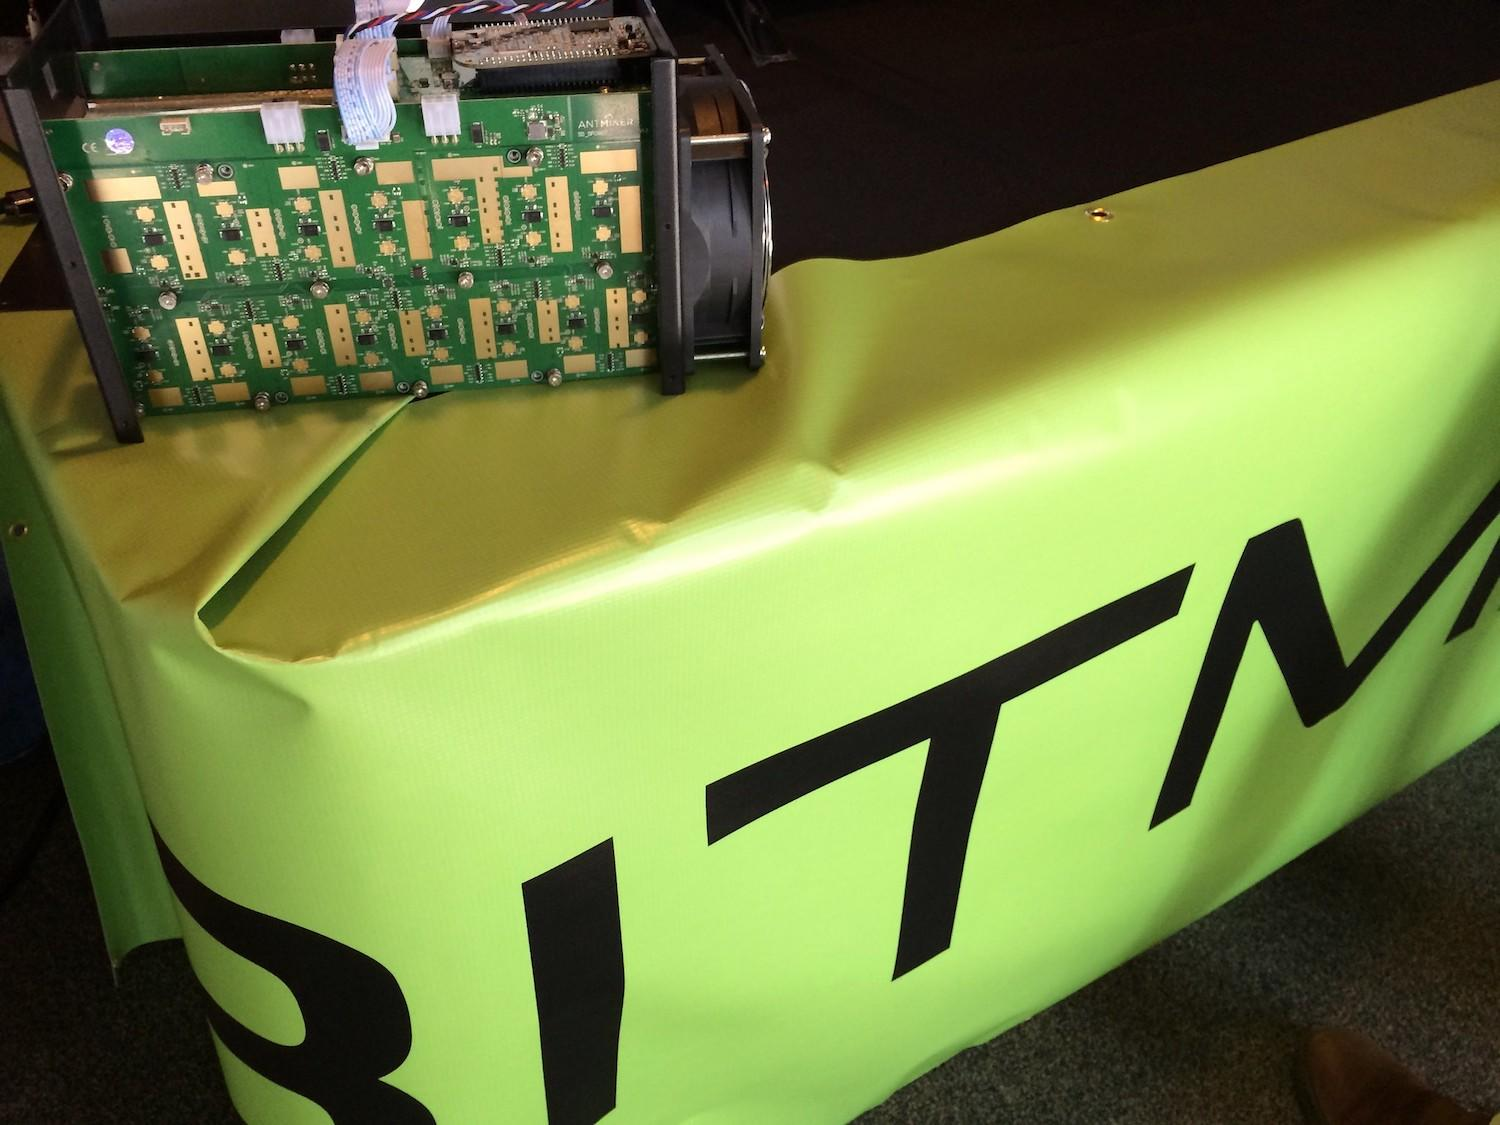 World's Top Crypto Miners Race to Roll Out Top-of-Line Machines Ahead of Bitcoin Halving